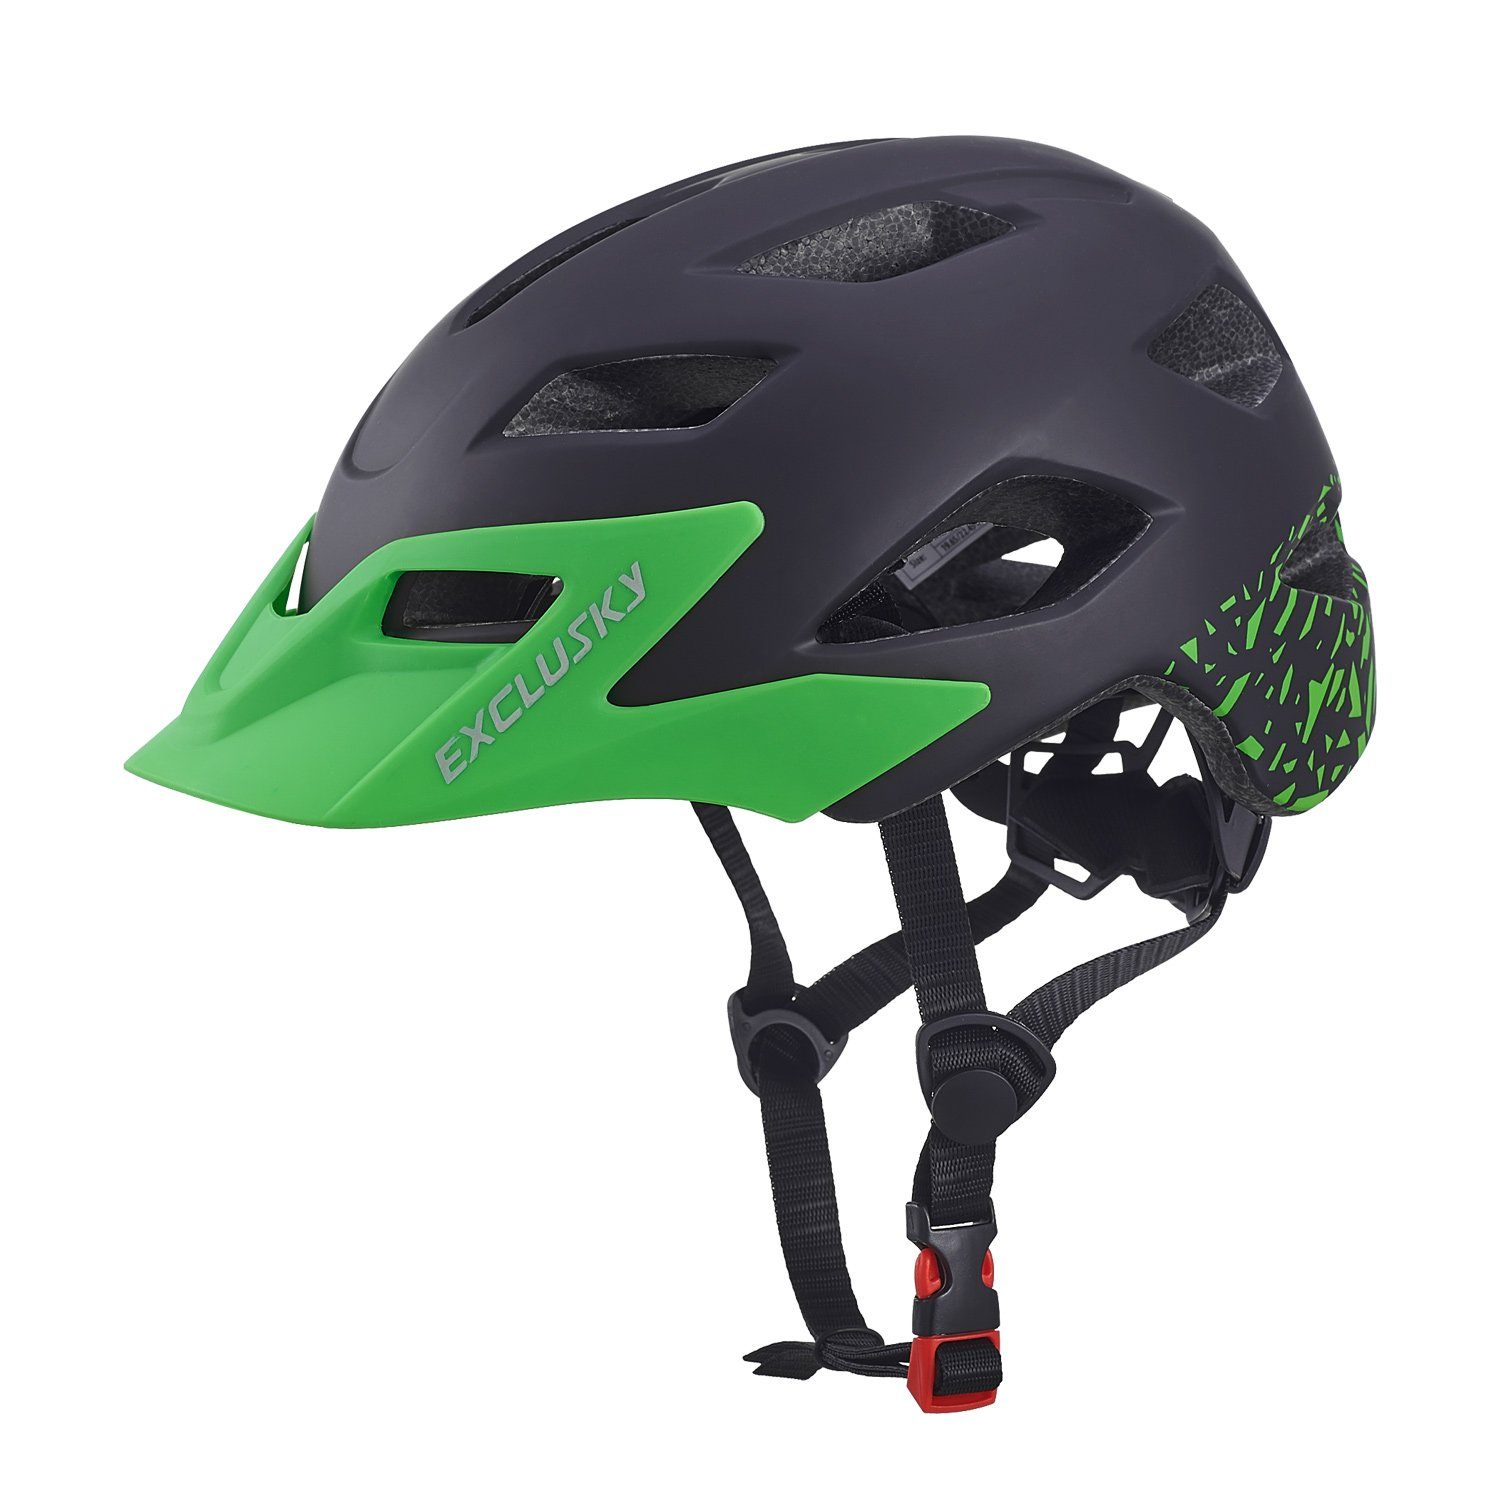 Exclusky Youth Bike/Skate/Multi-Sport Helmet Adjustable 50-57cm(Ages 5-13) (Black)